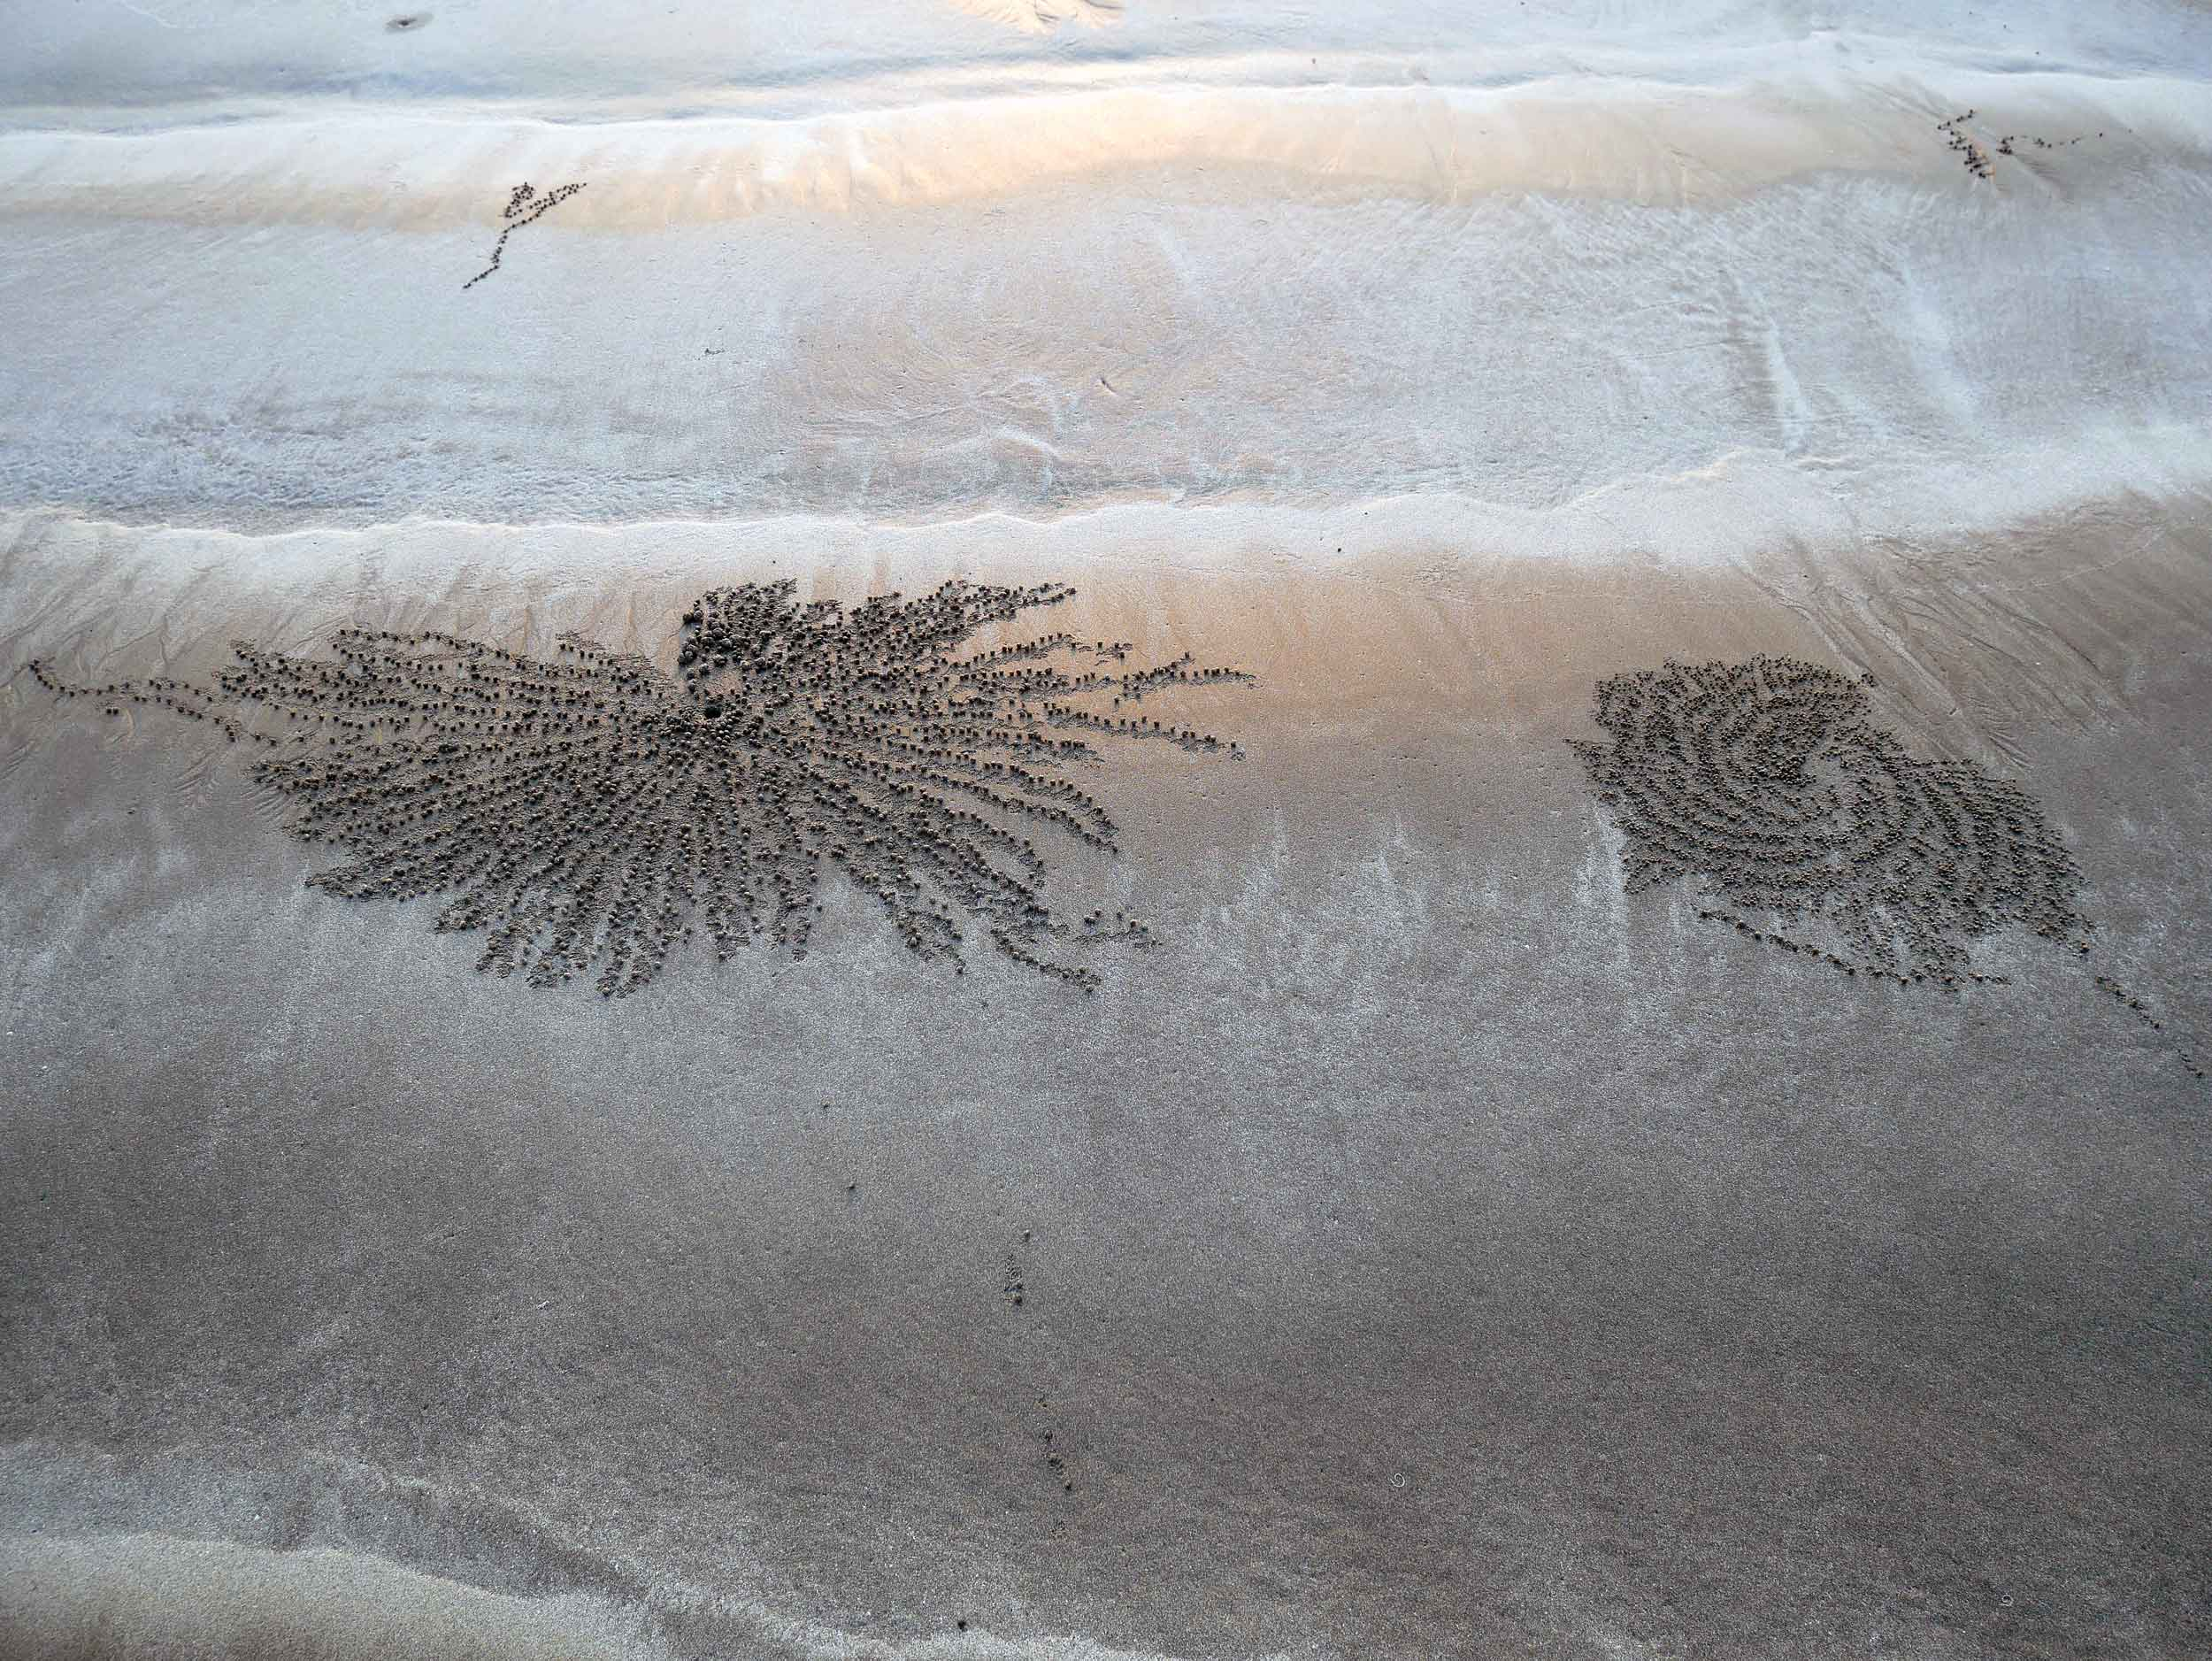 The beautiful art of the tiny Sand Bubbler crabs, who leave behind balled up excess sand as they hunt for food.